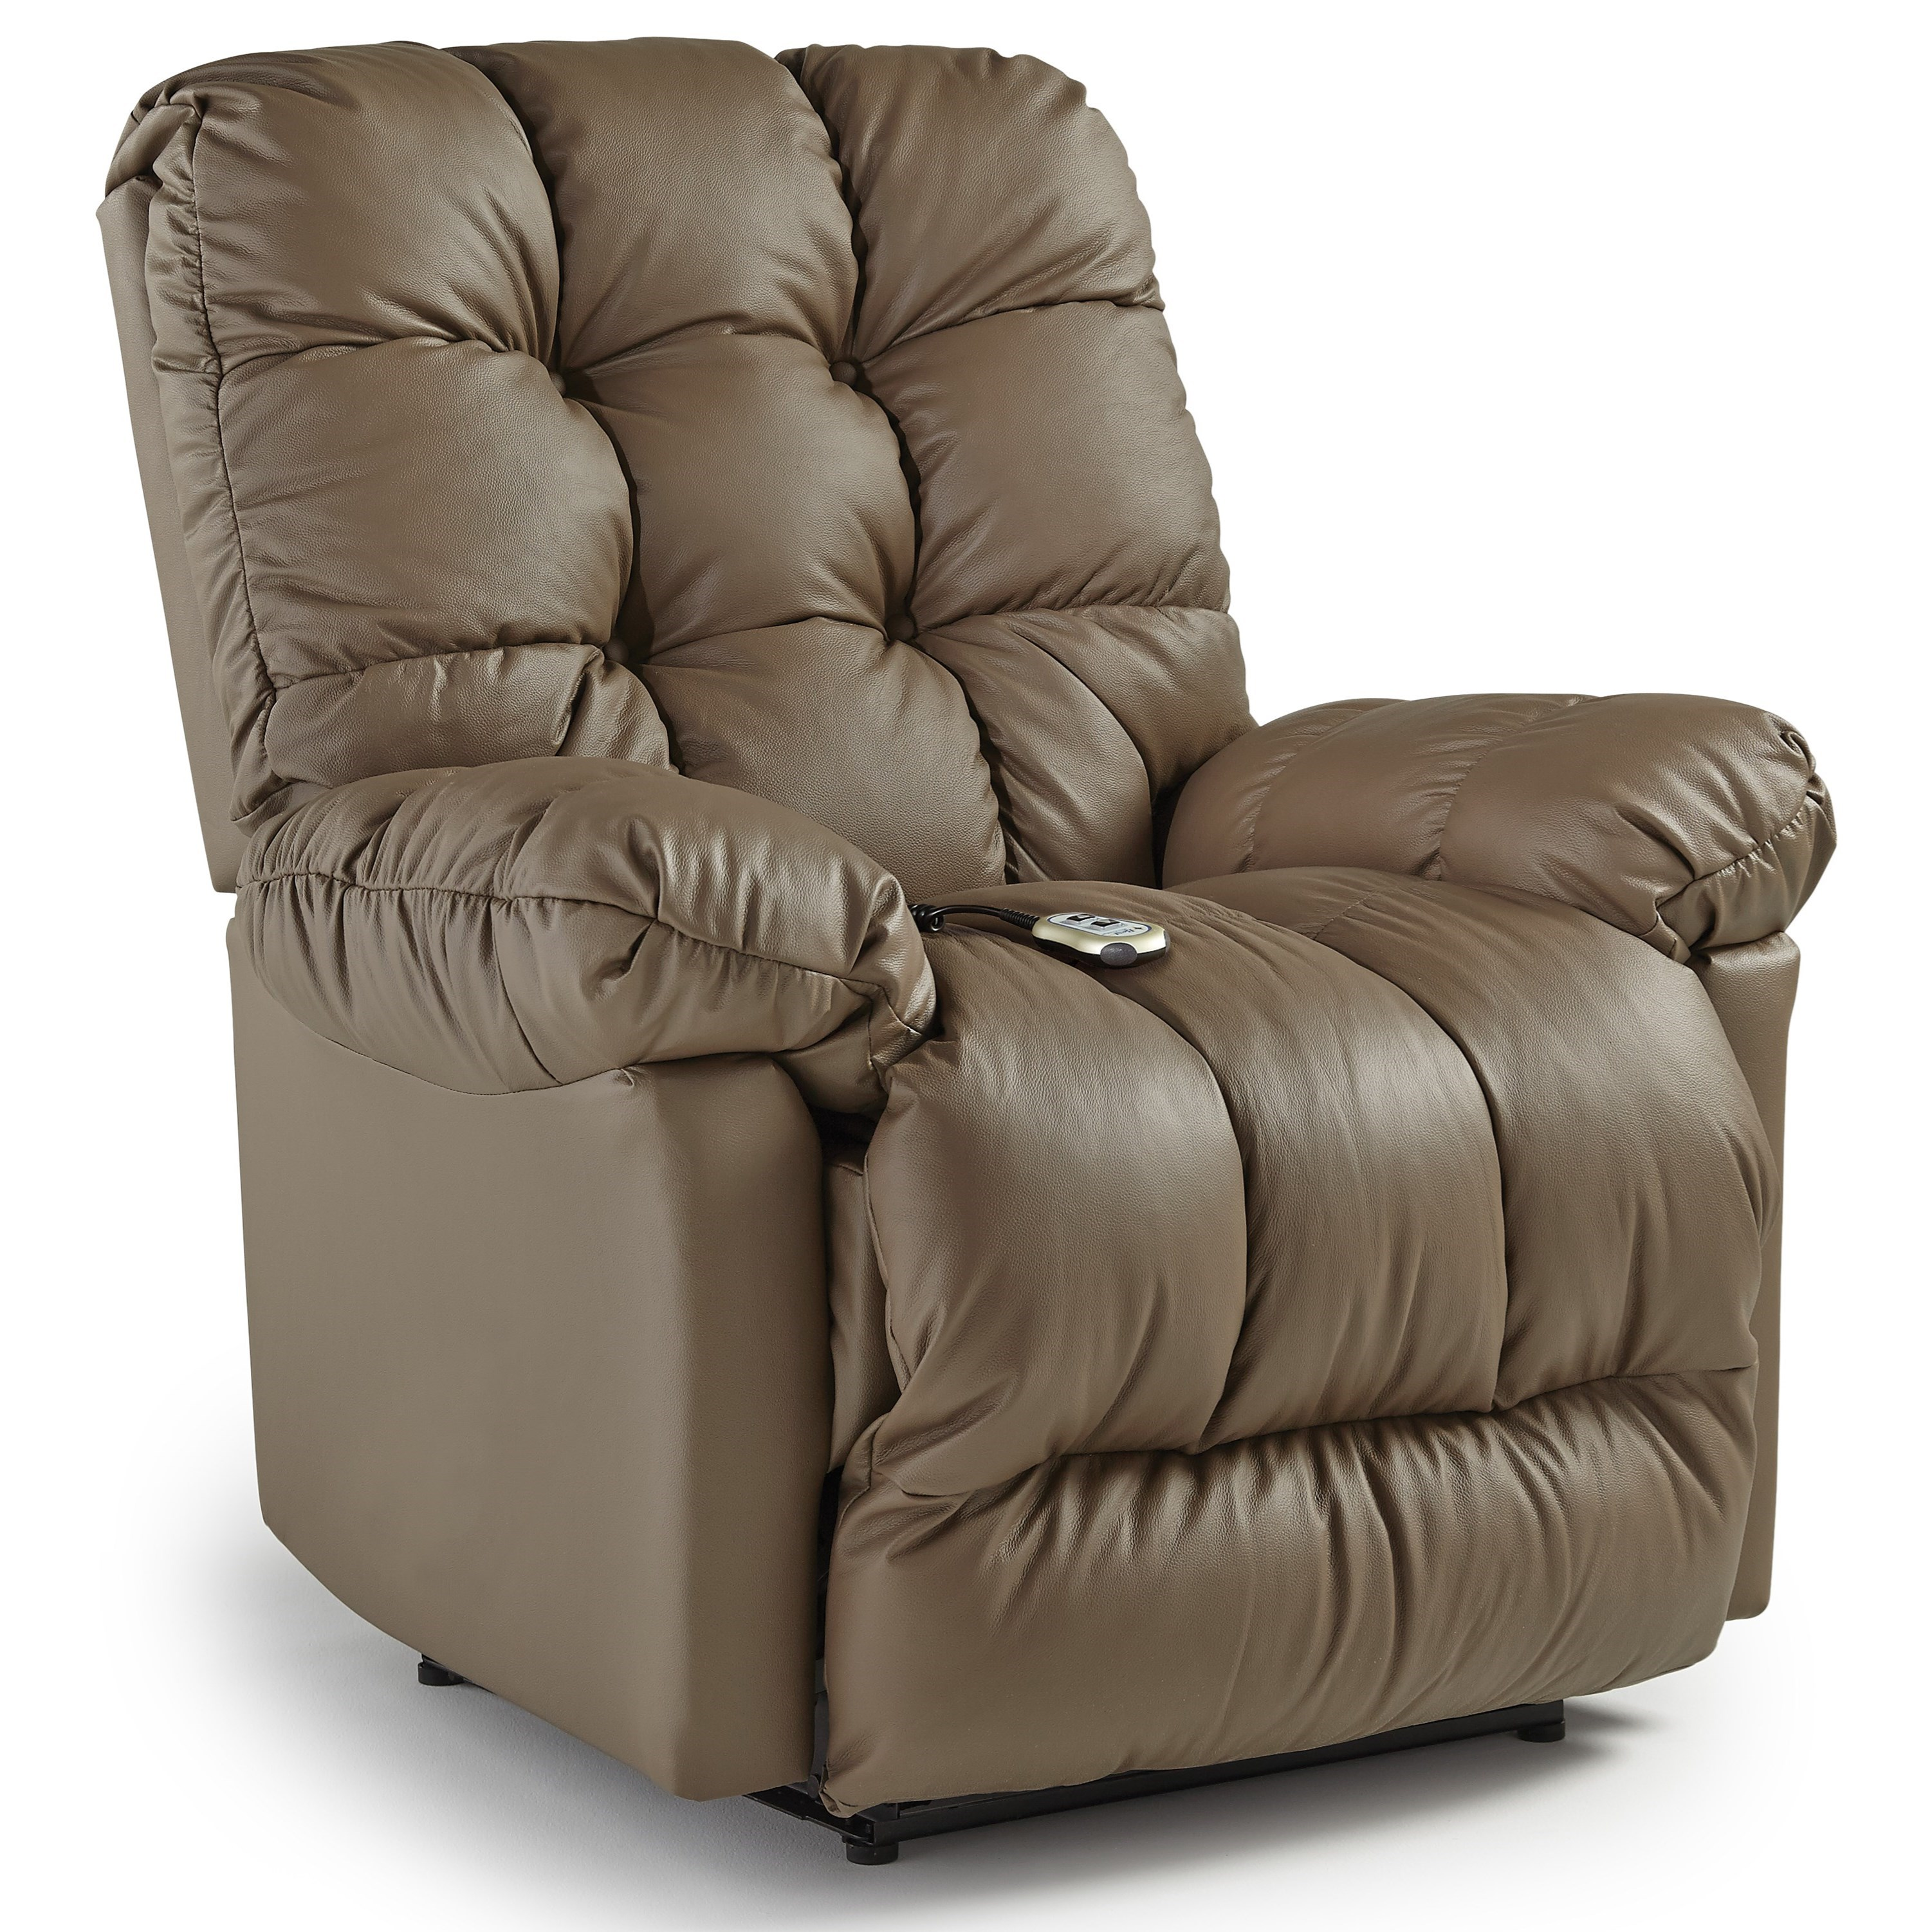 Electric Lift Chairs Best Home Furnishings Medium Recliners Brosmer Power Lift